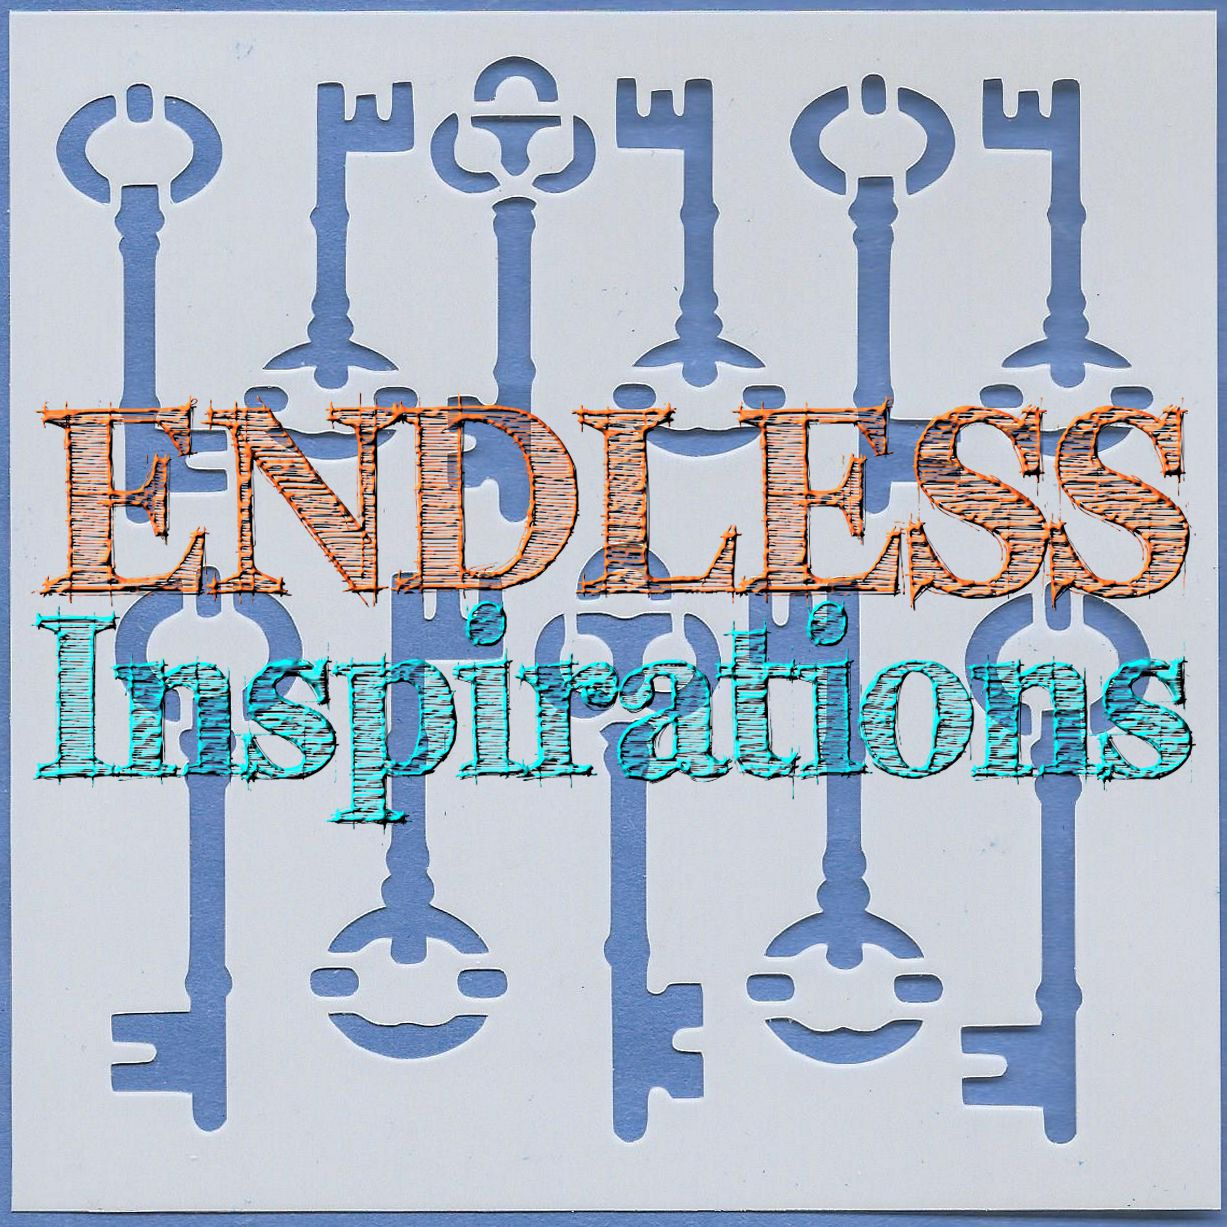 Endless Inspirations Original Stencil, 6 x 6 Inch, Keys in a Row - Redbird Inspirations